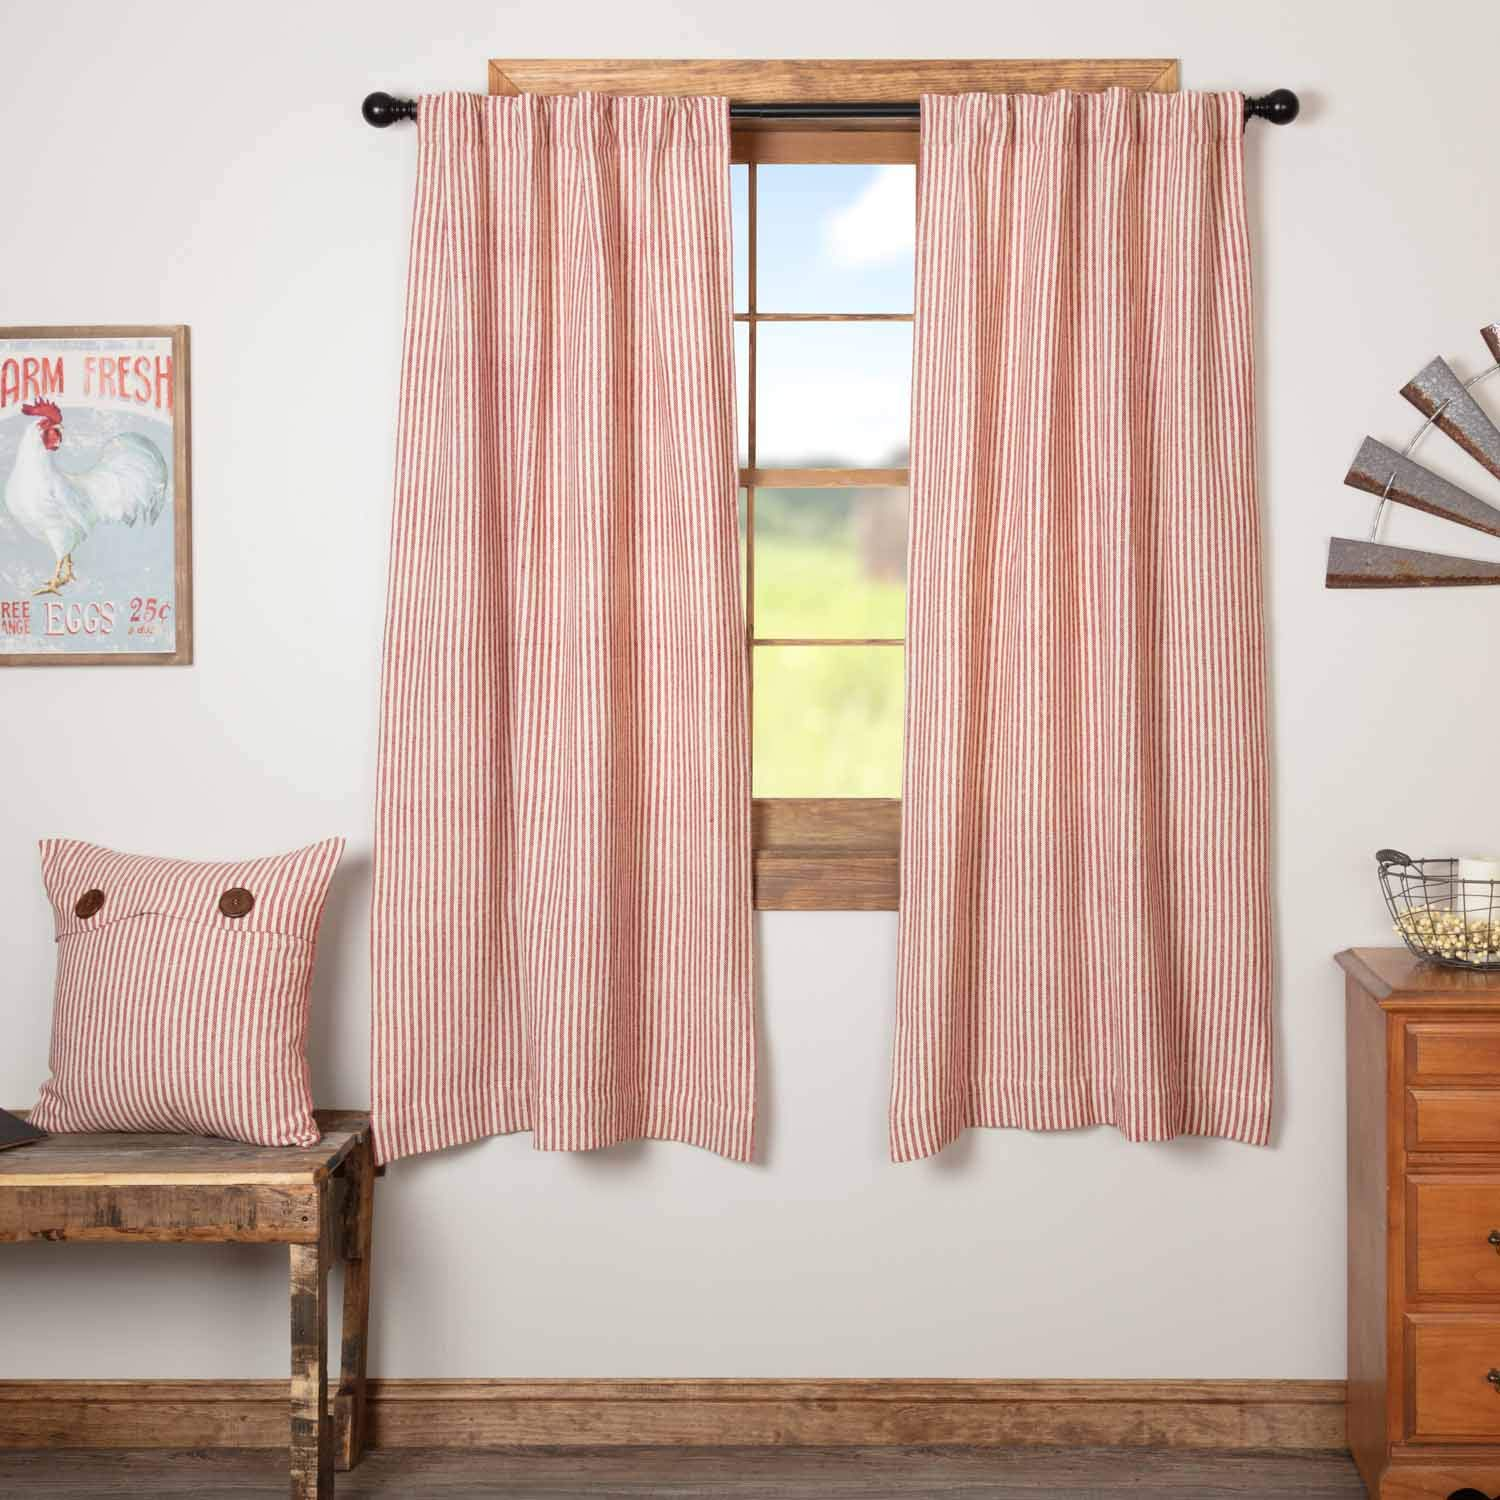 "Homespun Red Ticking Panel Curtains, Set of 2, 63"" Long, Primitive, Country, Farmhouse Style Window Drapes"